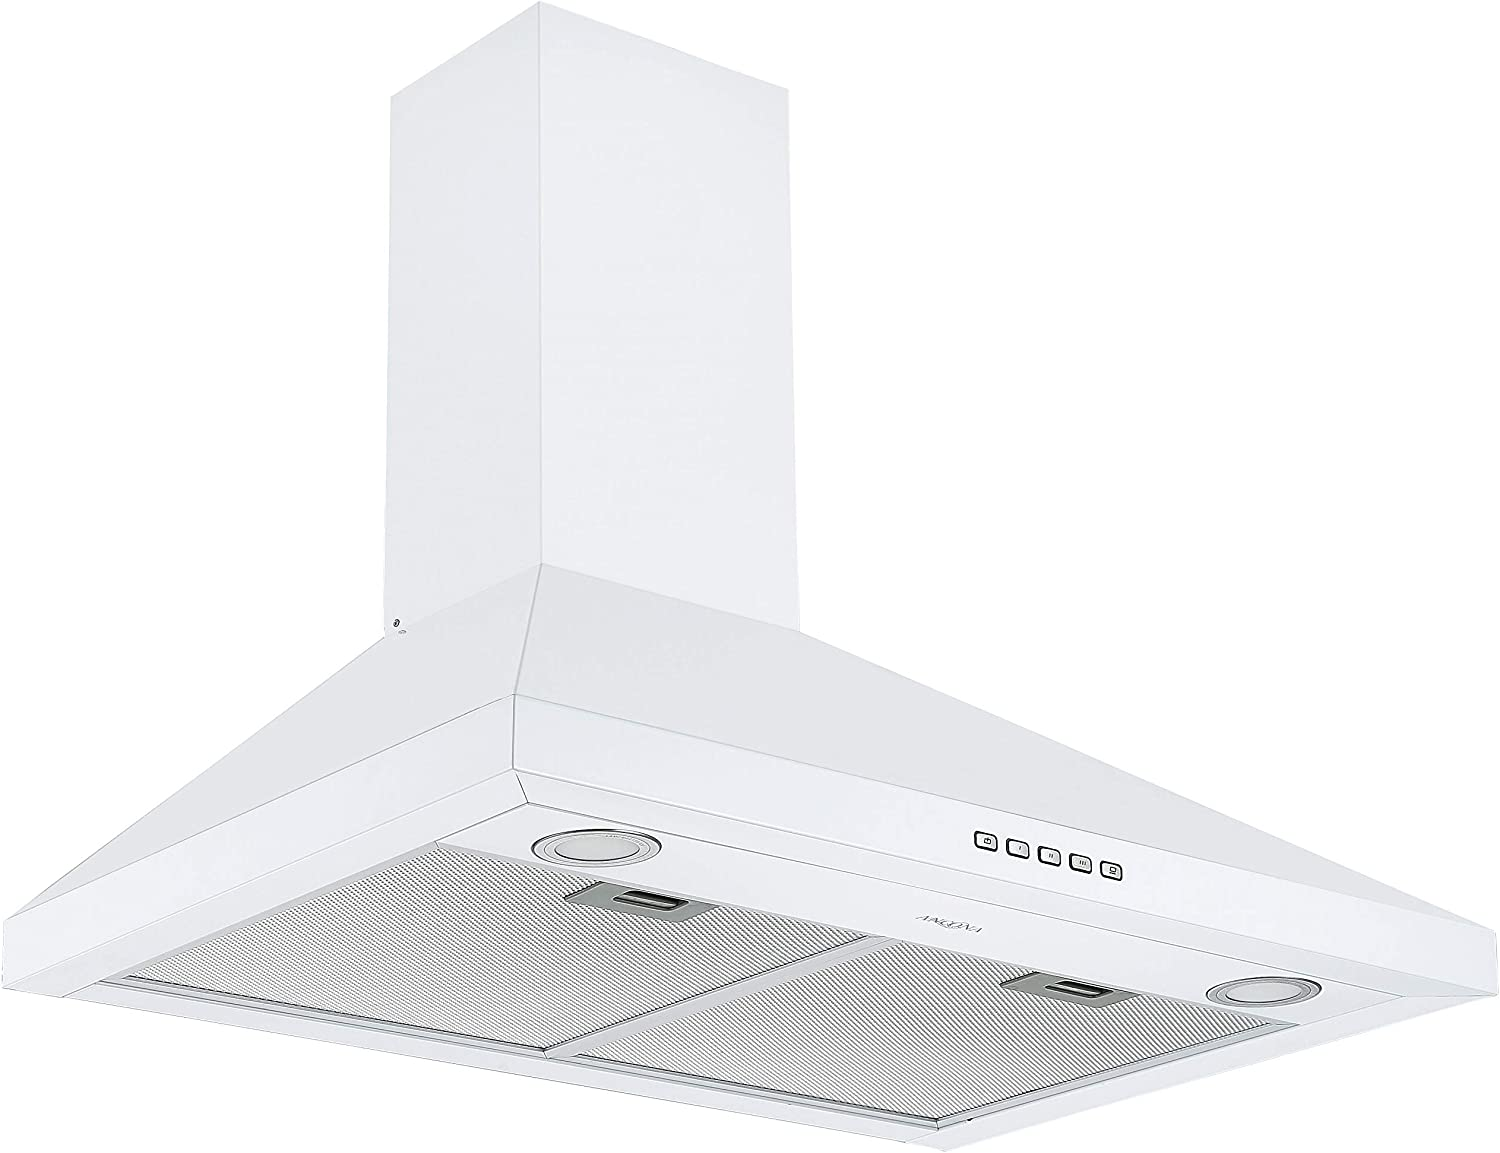 Ancona AN-1546 30 in. Convertible Wall-Mounted Pyramid Range Hood in White